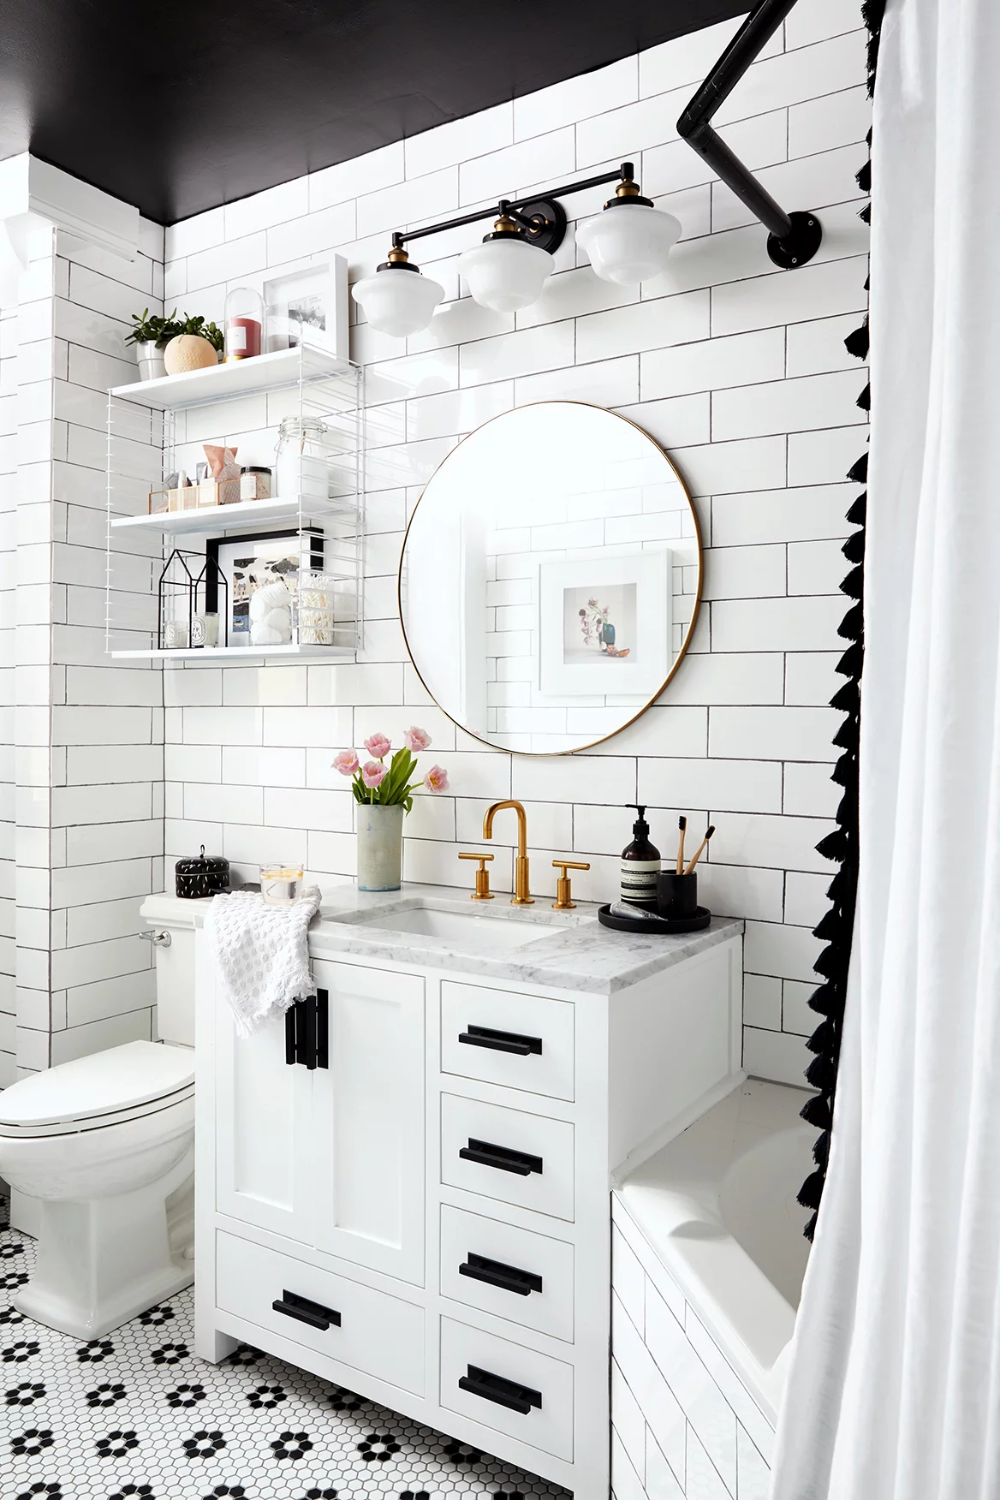 14 Small-Space Lessons from a 750-Square-Foot Townhome ...